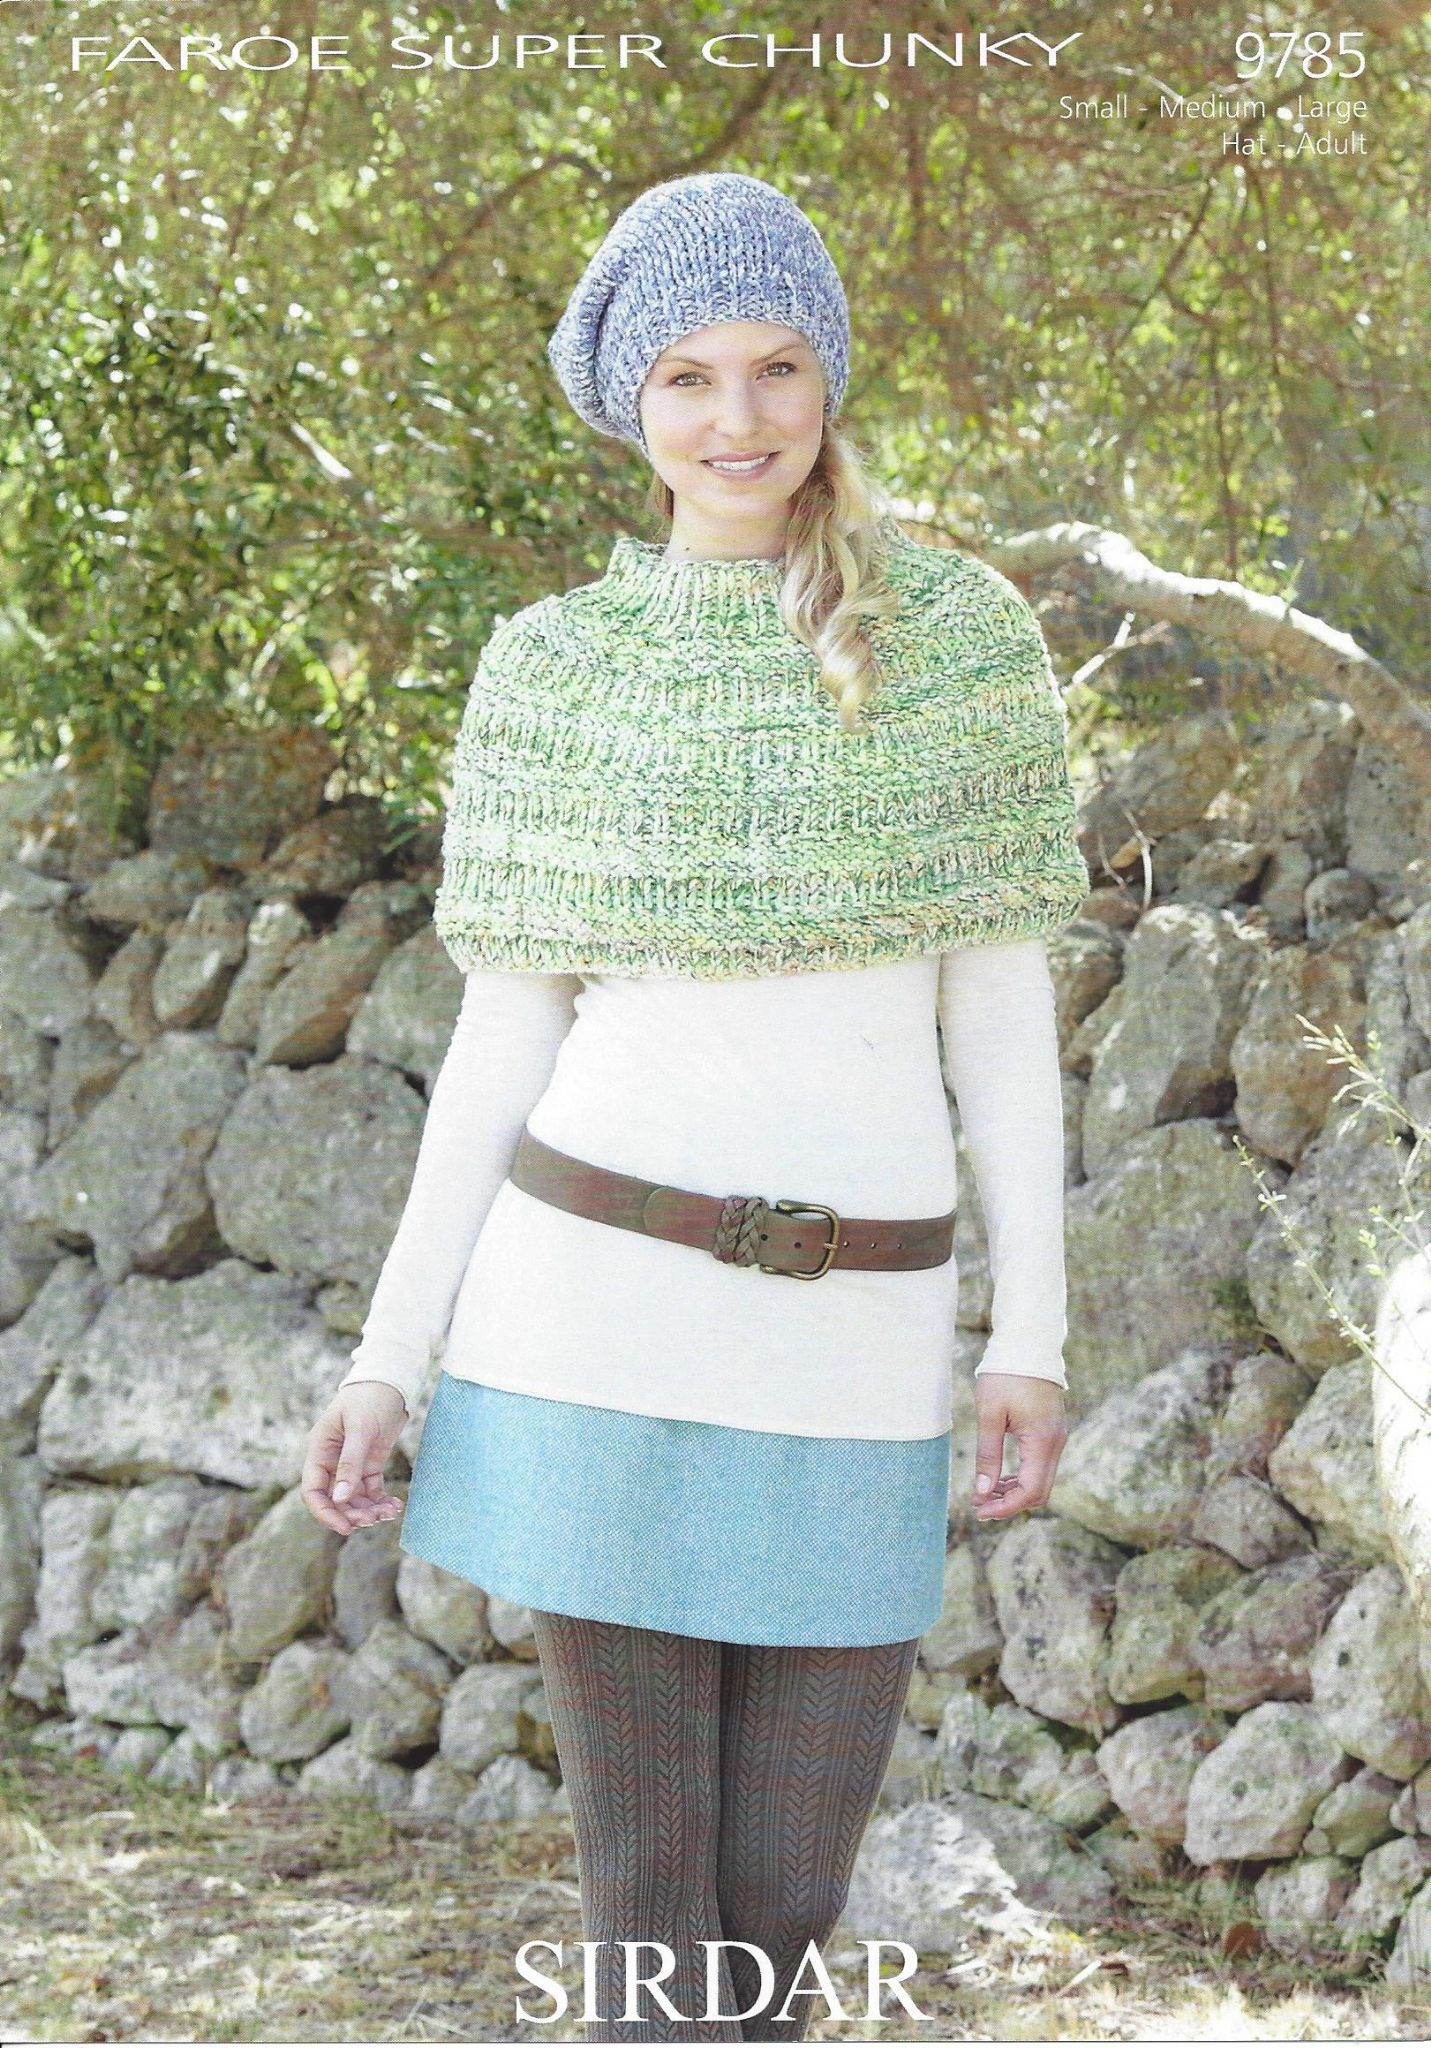 Machine Knitting Patterns For Babies : Sirdar Faroe Super Chunky - 9785 Poncho & Hat Knitting Pattern